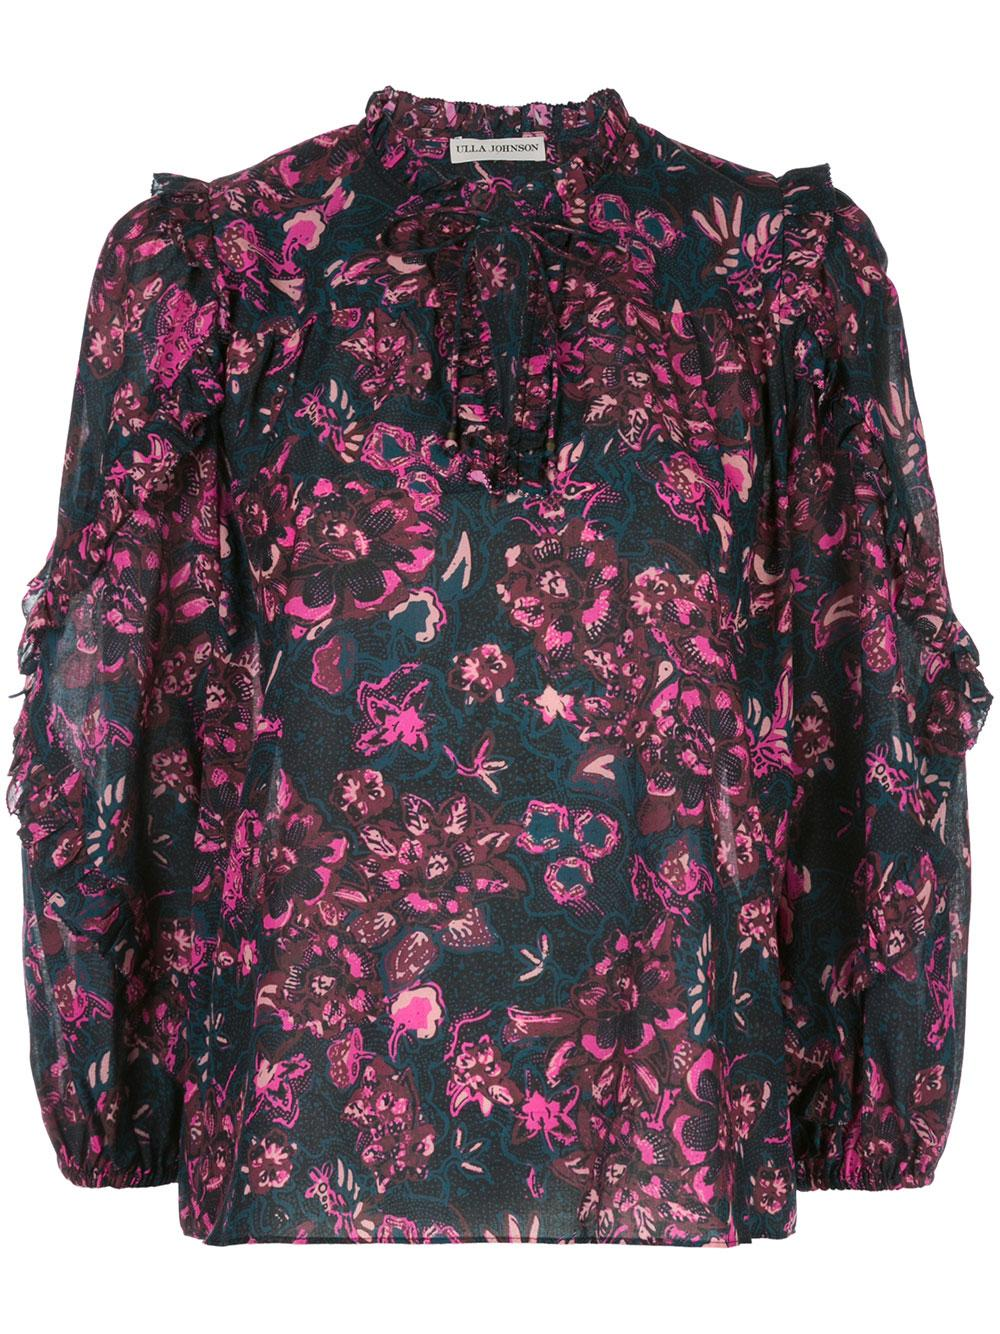 Rana Floral Camellia Cotton Silk Long Sleeved Top